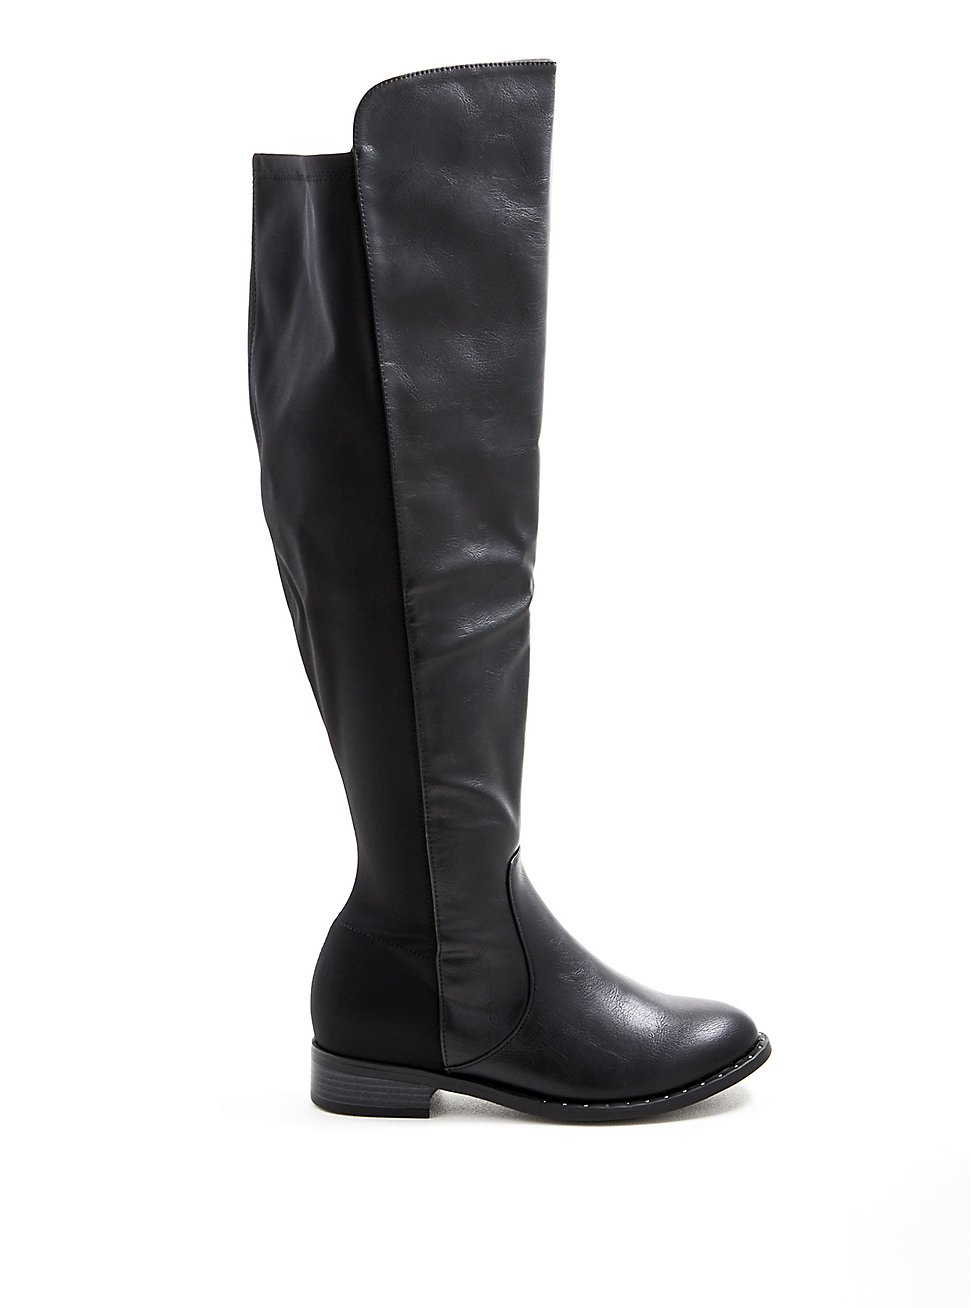 Black Faux Leather Studded Welt Over The Knee Boot (WW), BLACK, hi-res